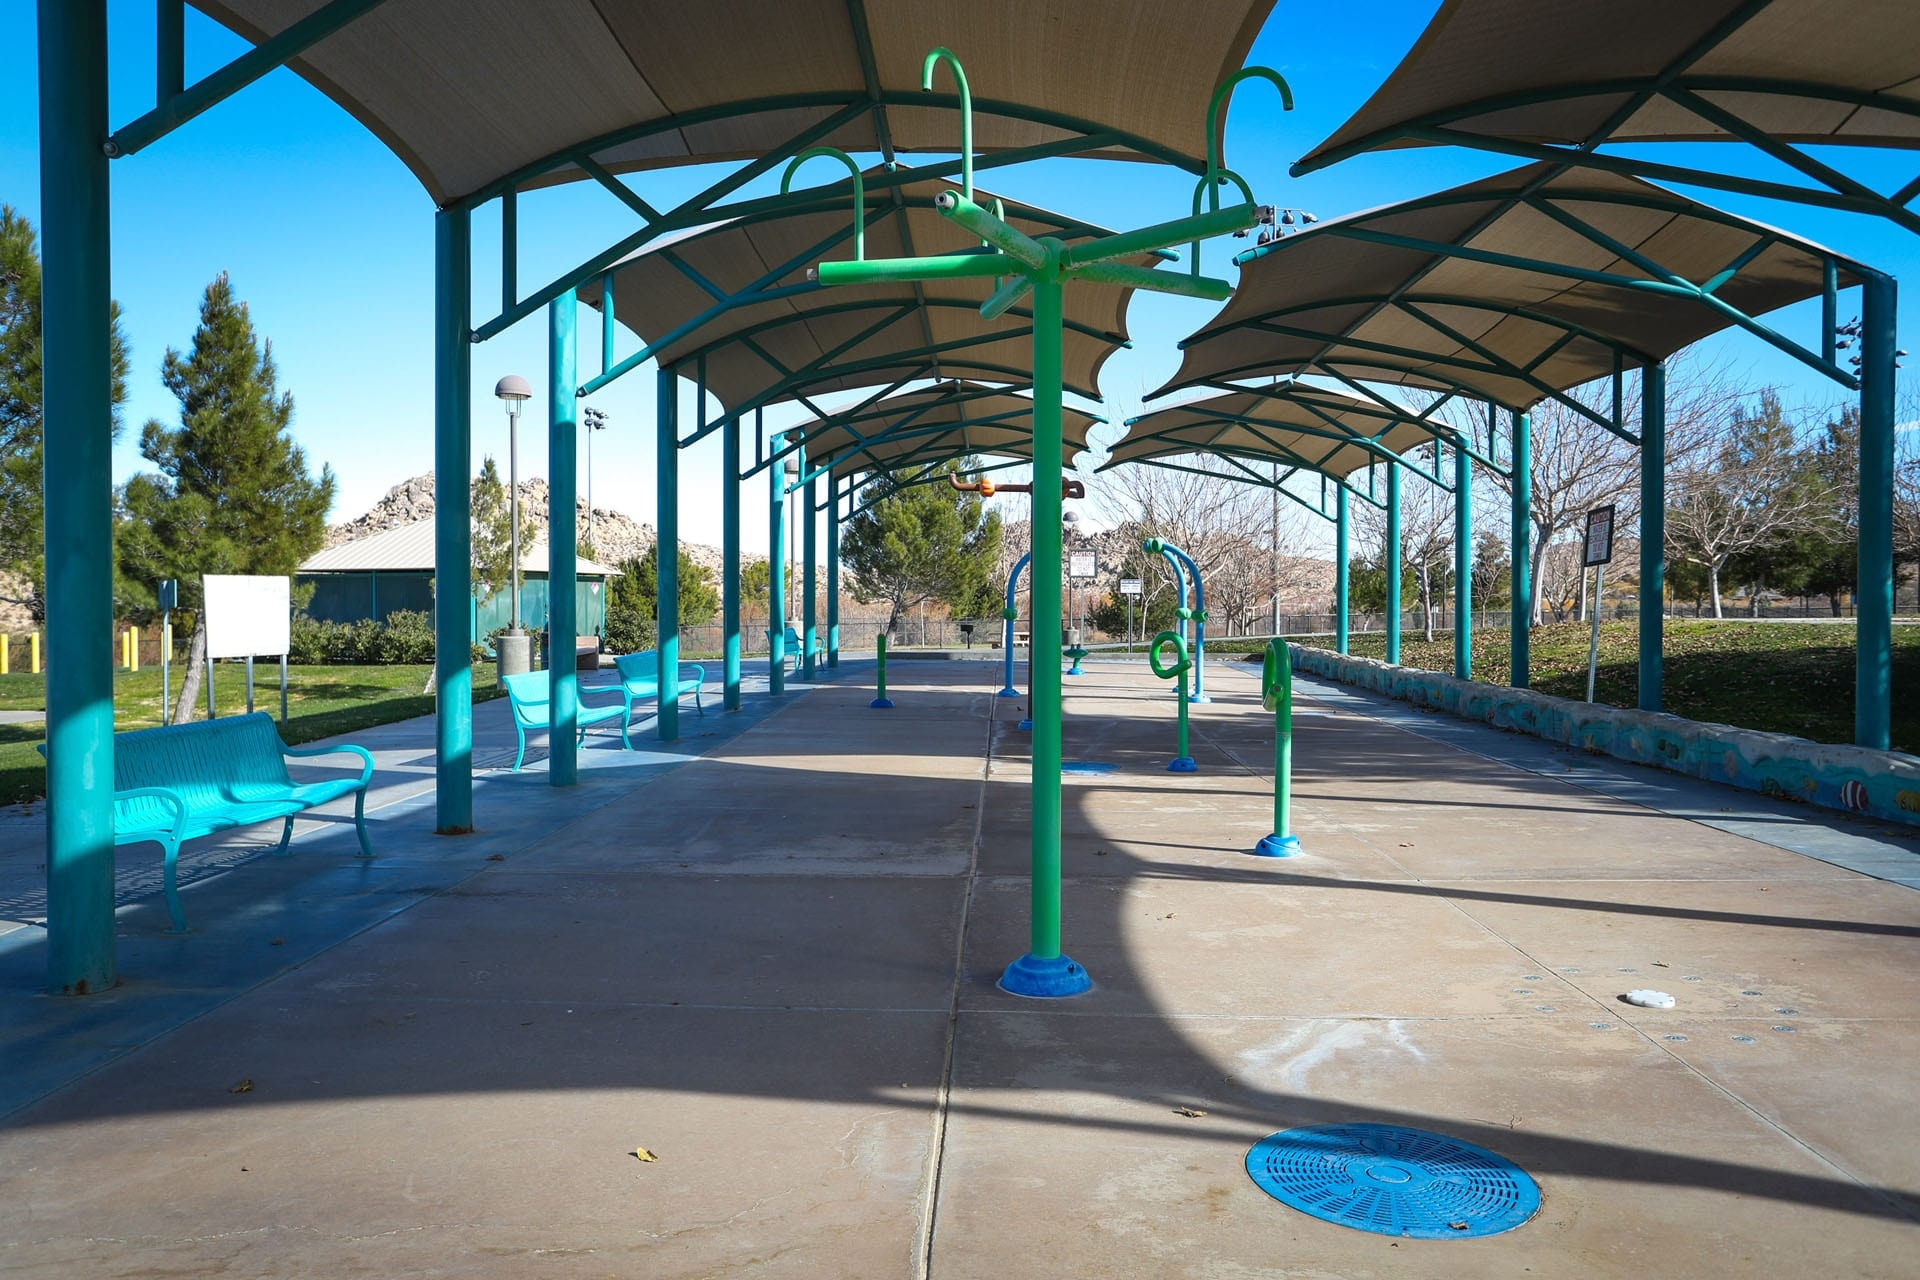 Shaded splash pads